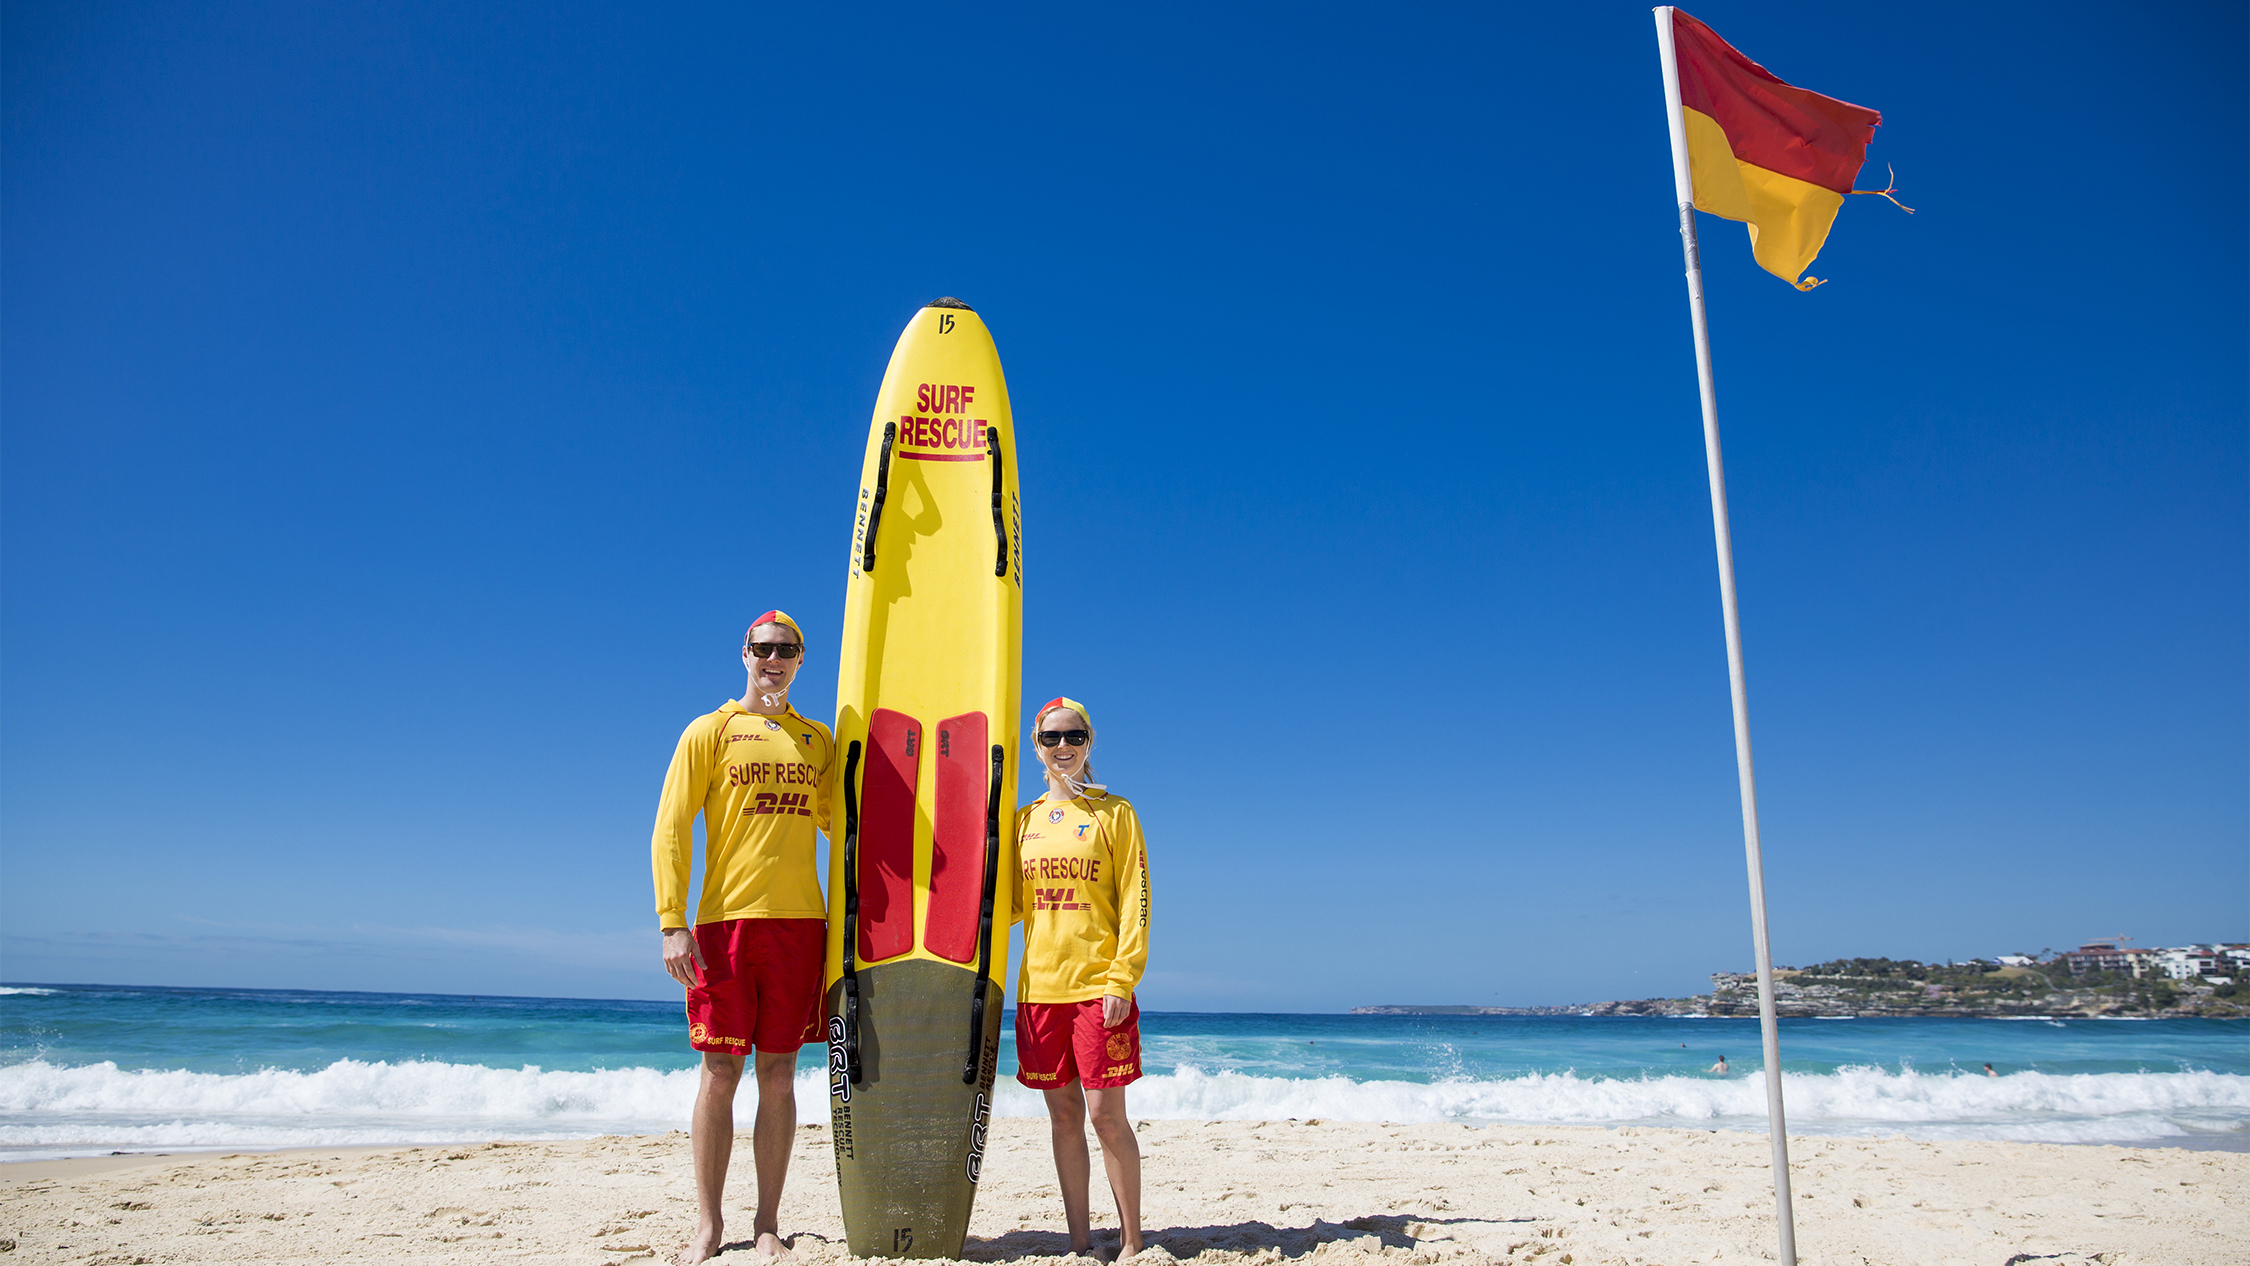 Zoe Whitfield and Reece Holland - North Bondi life savers